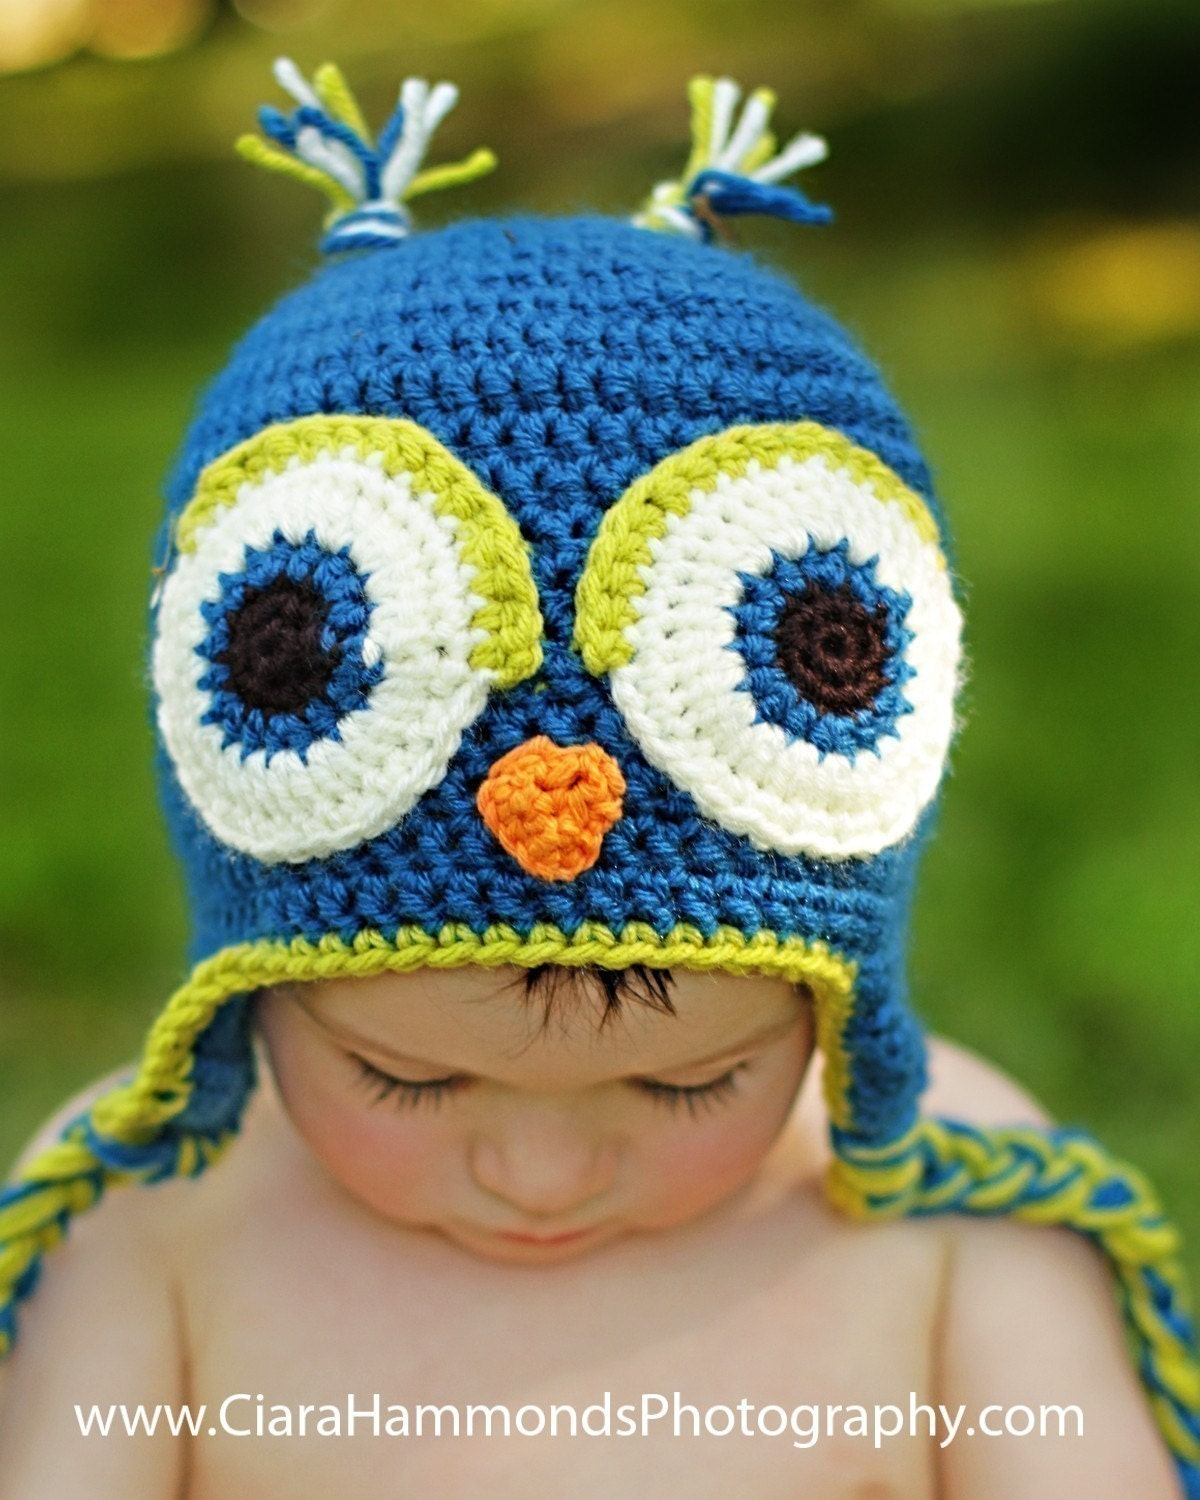 FASHION DOLL HAT Crochet Pattern - Free Crochet Pattern Courtesy